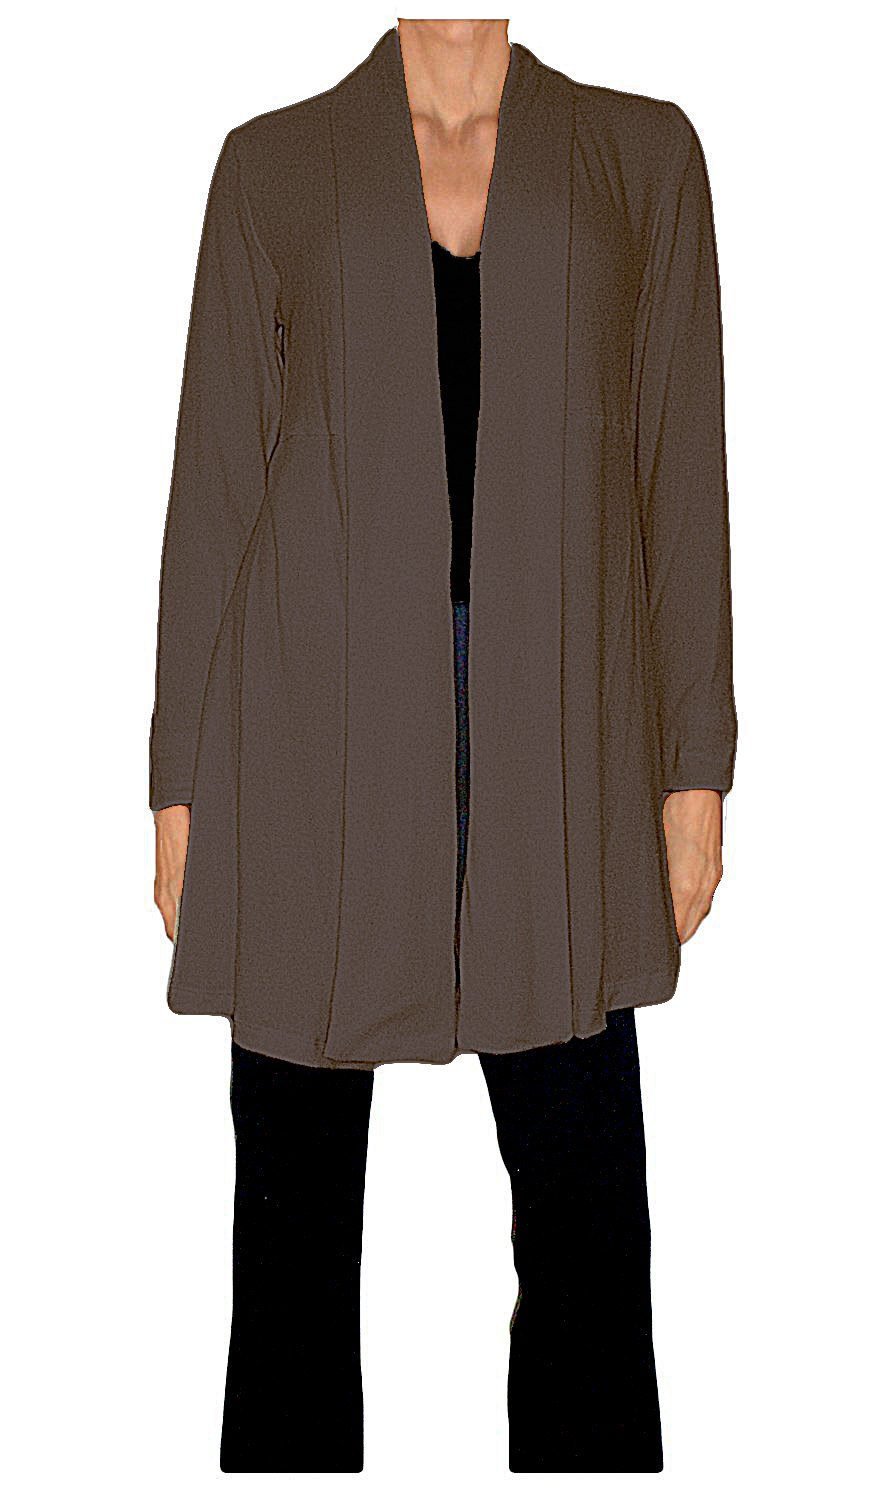 Ooh la la Jersey Knit Shawl Collar Flared Above The Knee Cardigan (Large 36-37, Brown) by Ooh la la